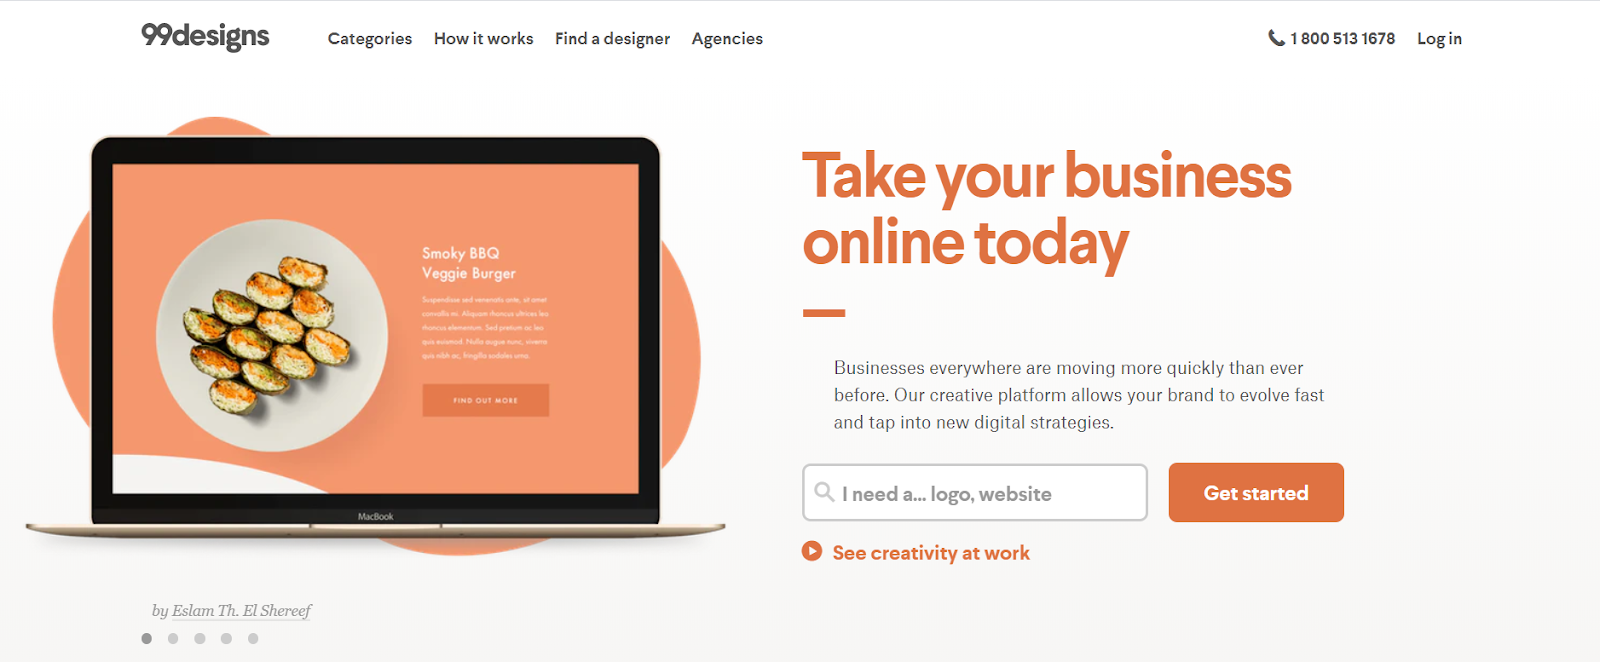 99Designs Review - Take Your Business Online Today